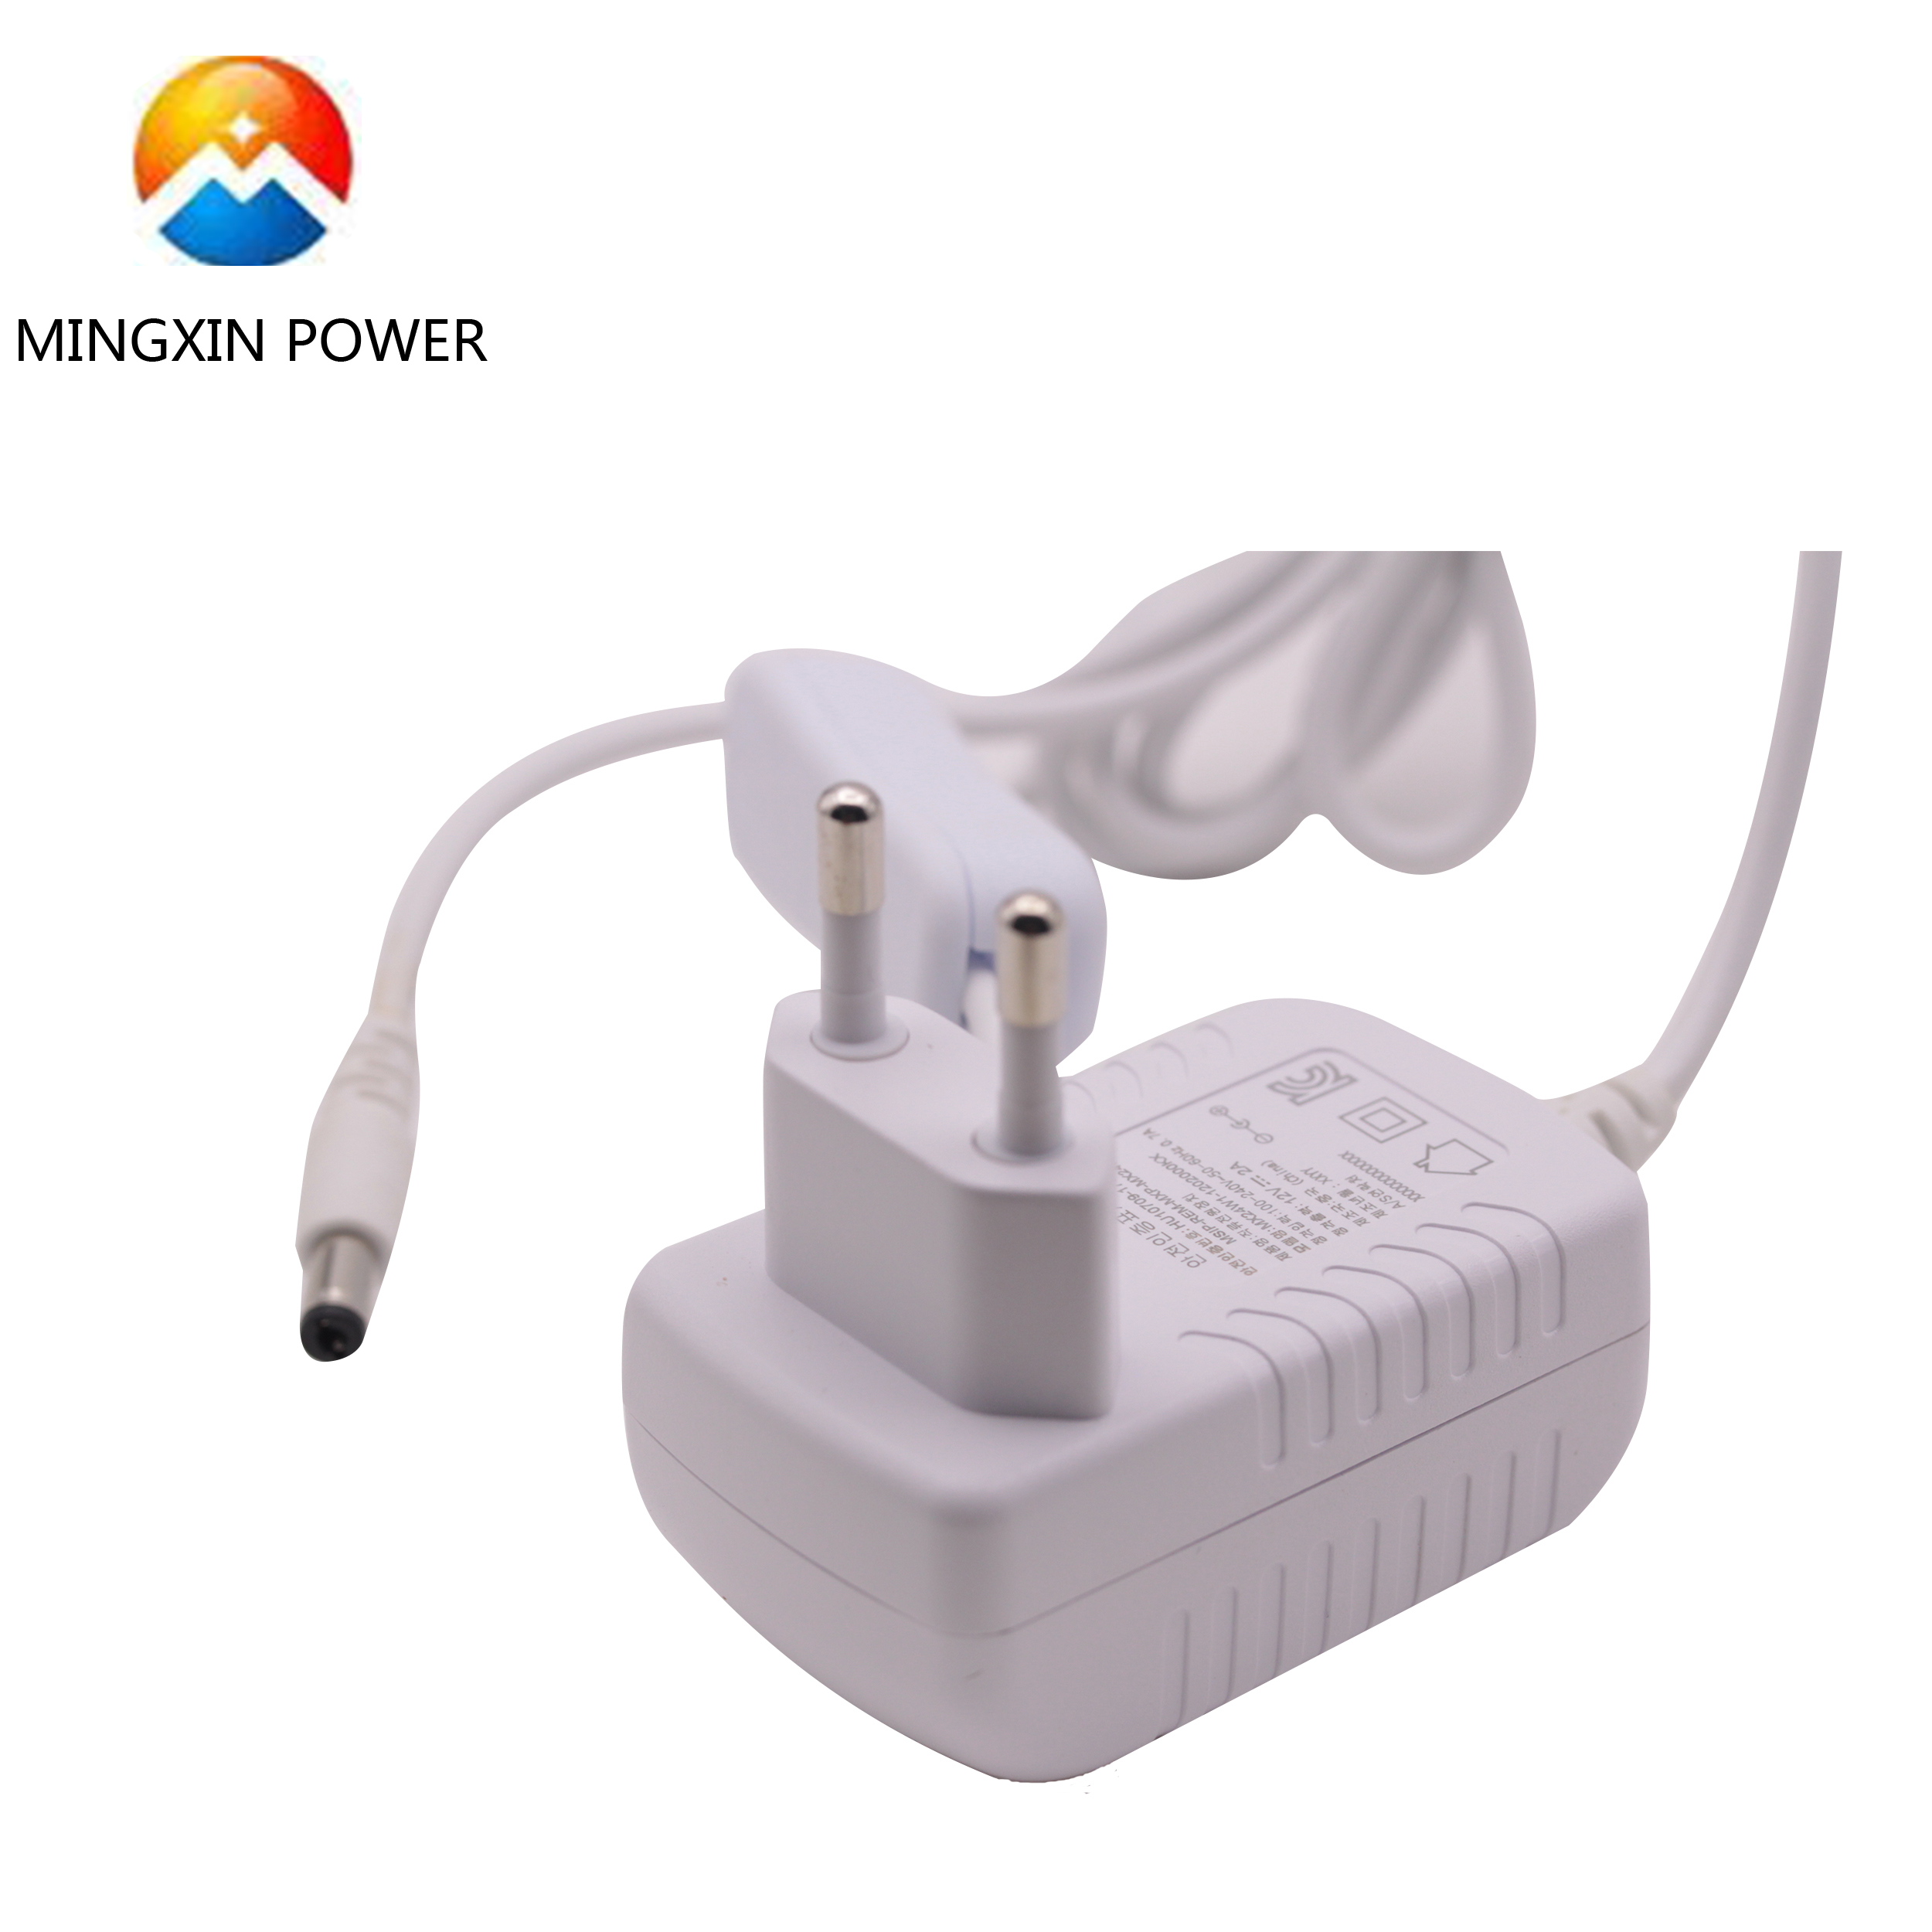 UK/US/AU/EU/KR plug 12v 2a power supply adaptor 24w 12 volt 2 amp ac dc <strong>adapter</strong> with on/off switch white color